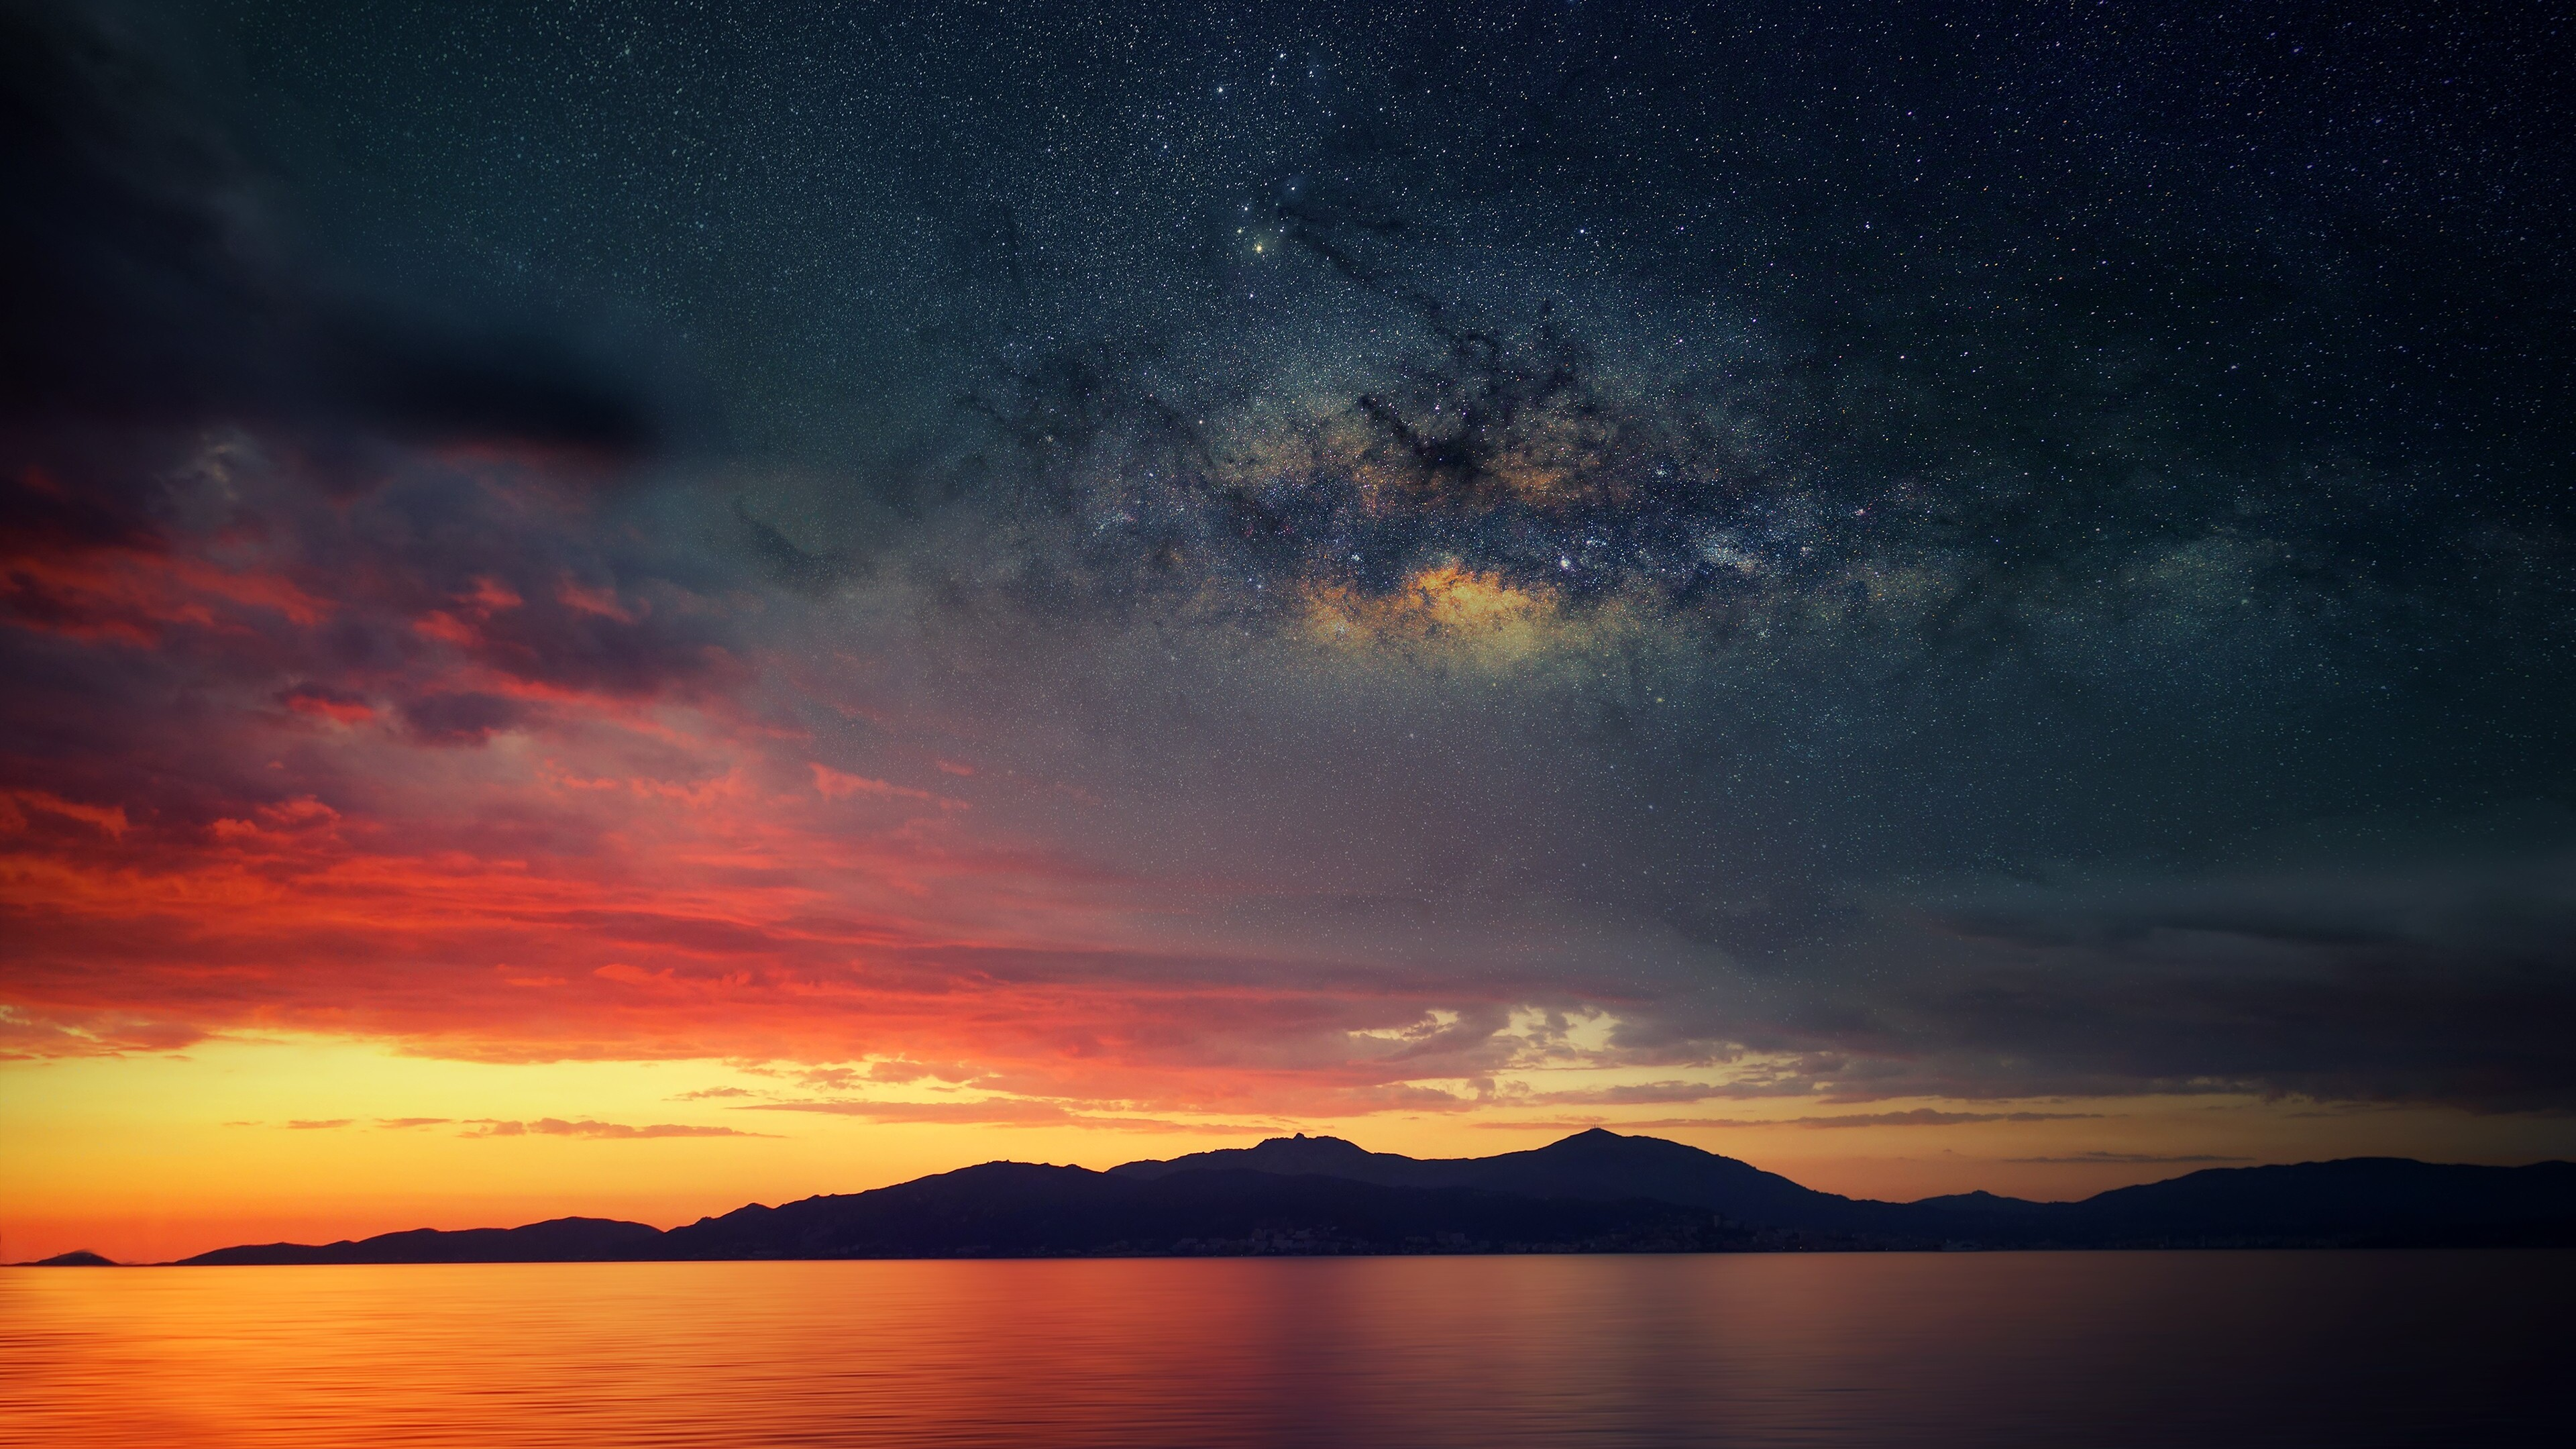 galaxy-blended-landscape-mountains-sunset-pl.jpg